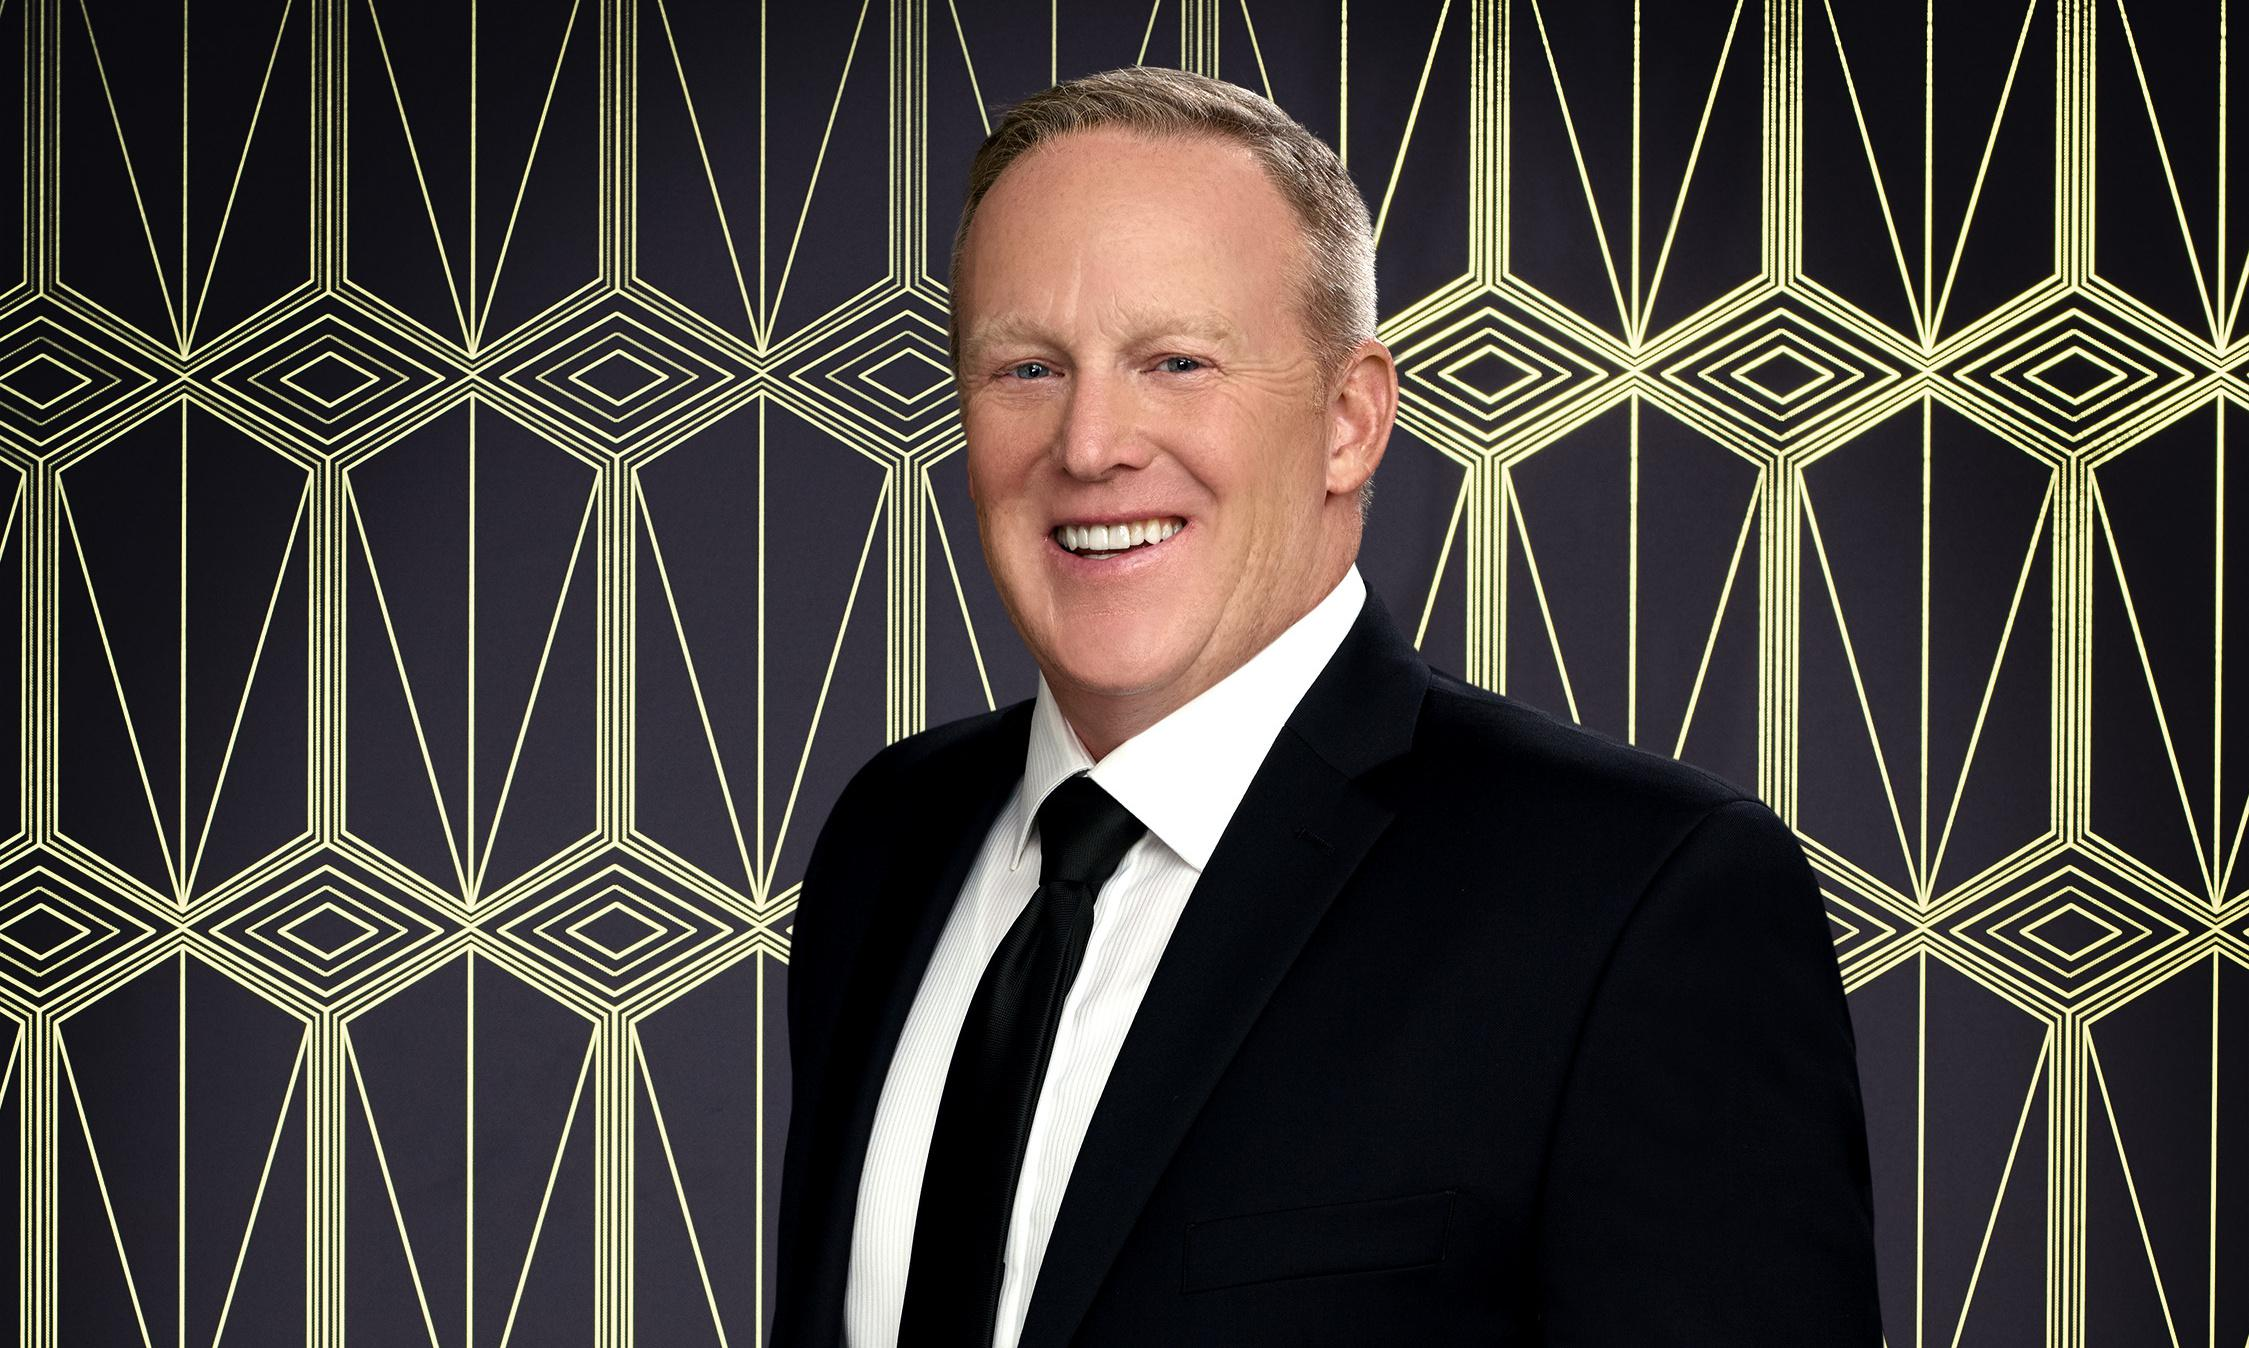 Is Sean Spicer the most controversial person ever to appear on a dancing show?